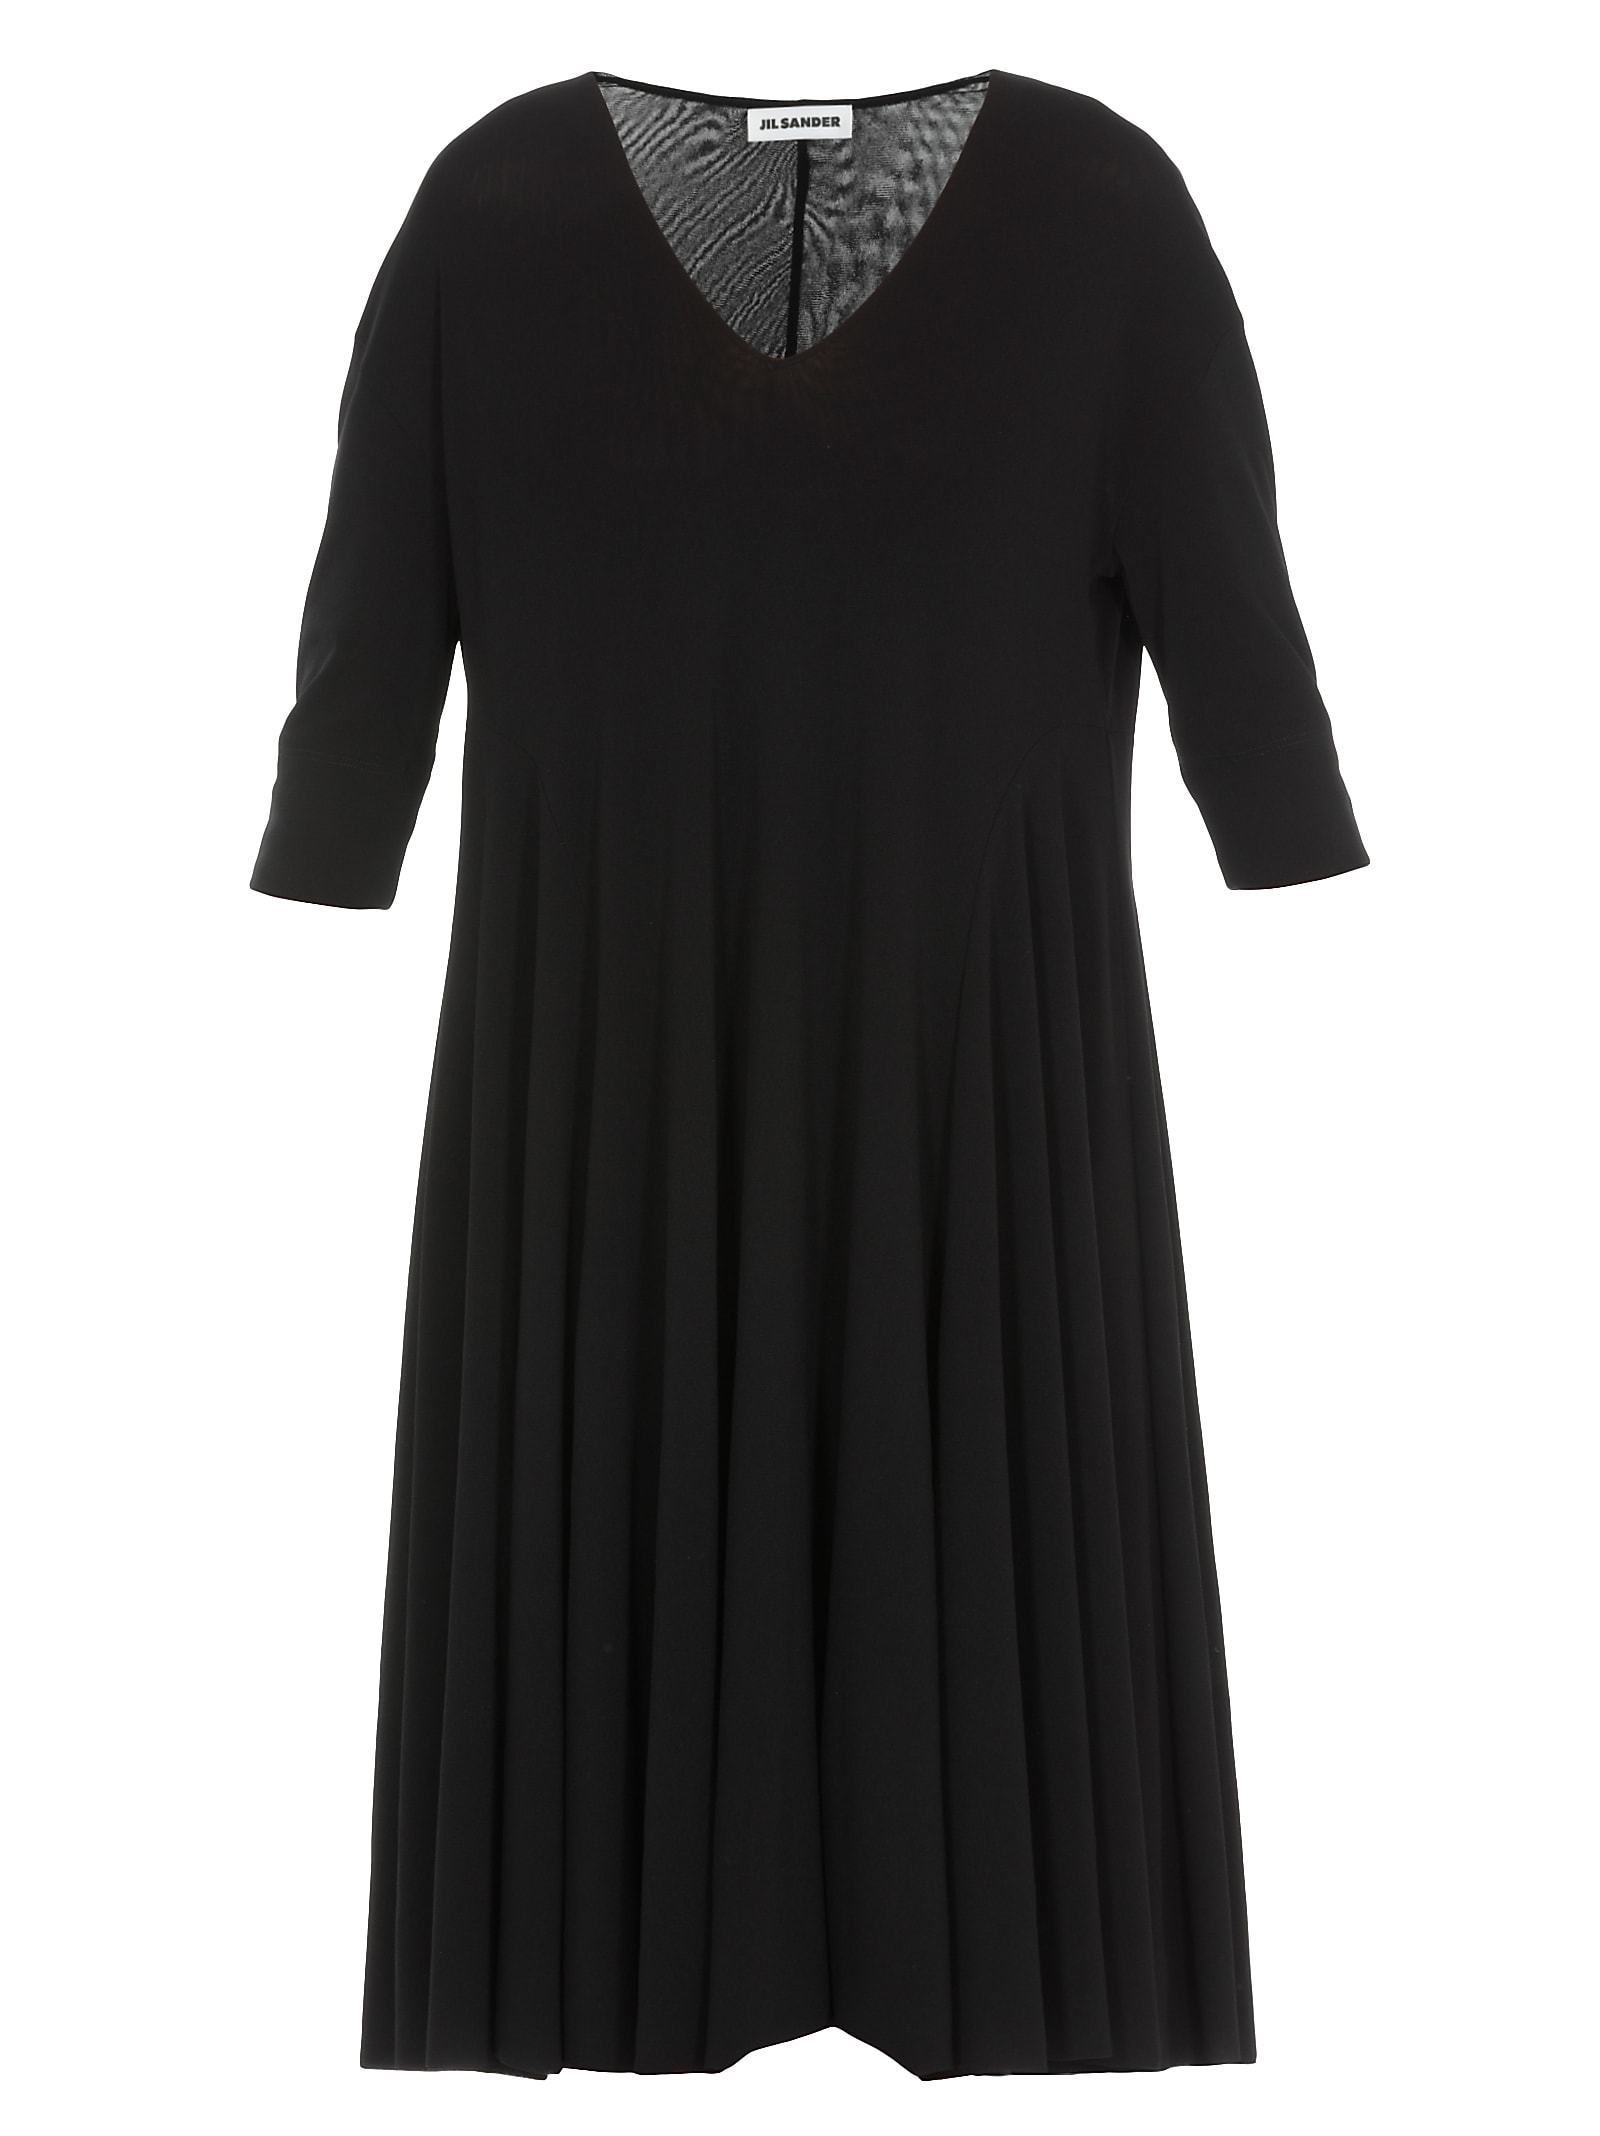 Jil Sander Flared Dress